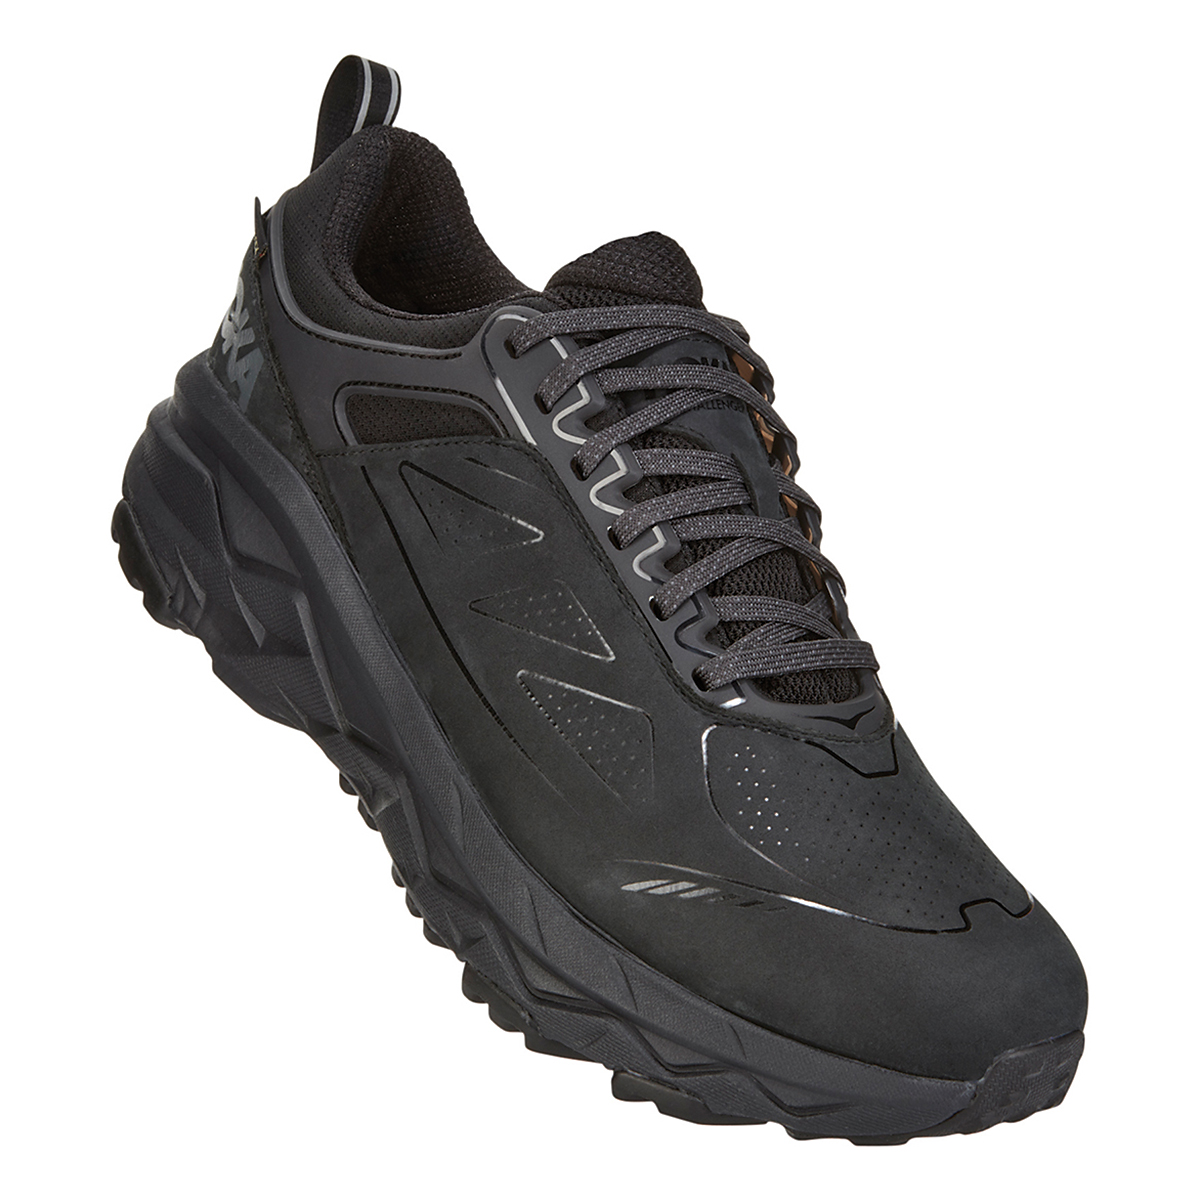 Men's Hoka One One Challenger Low Gore-Tex Trail Running Shoe, , large, image 2